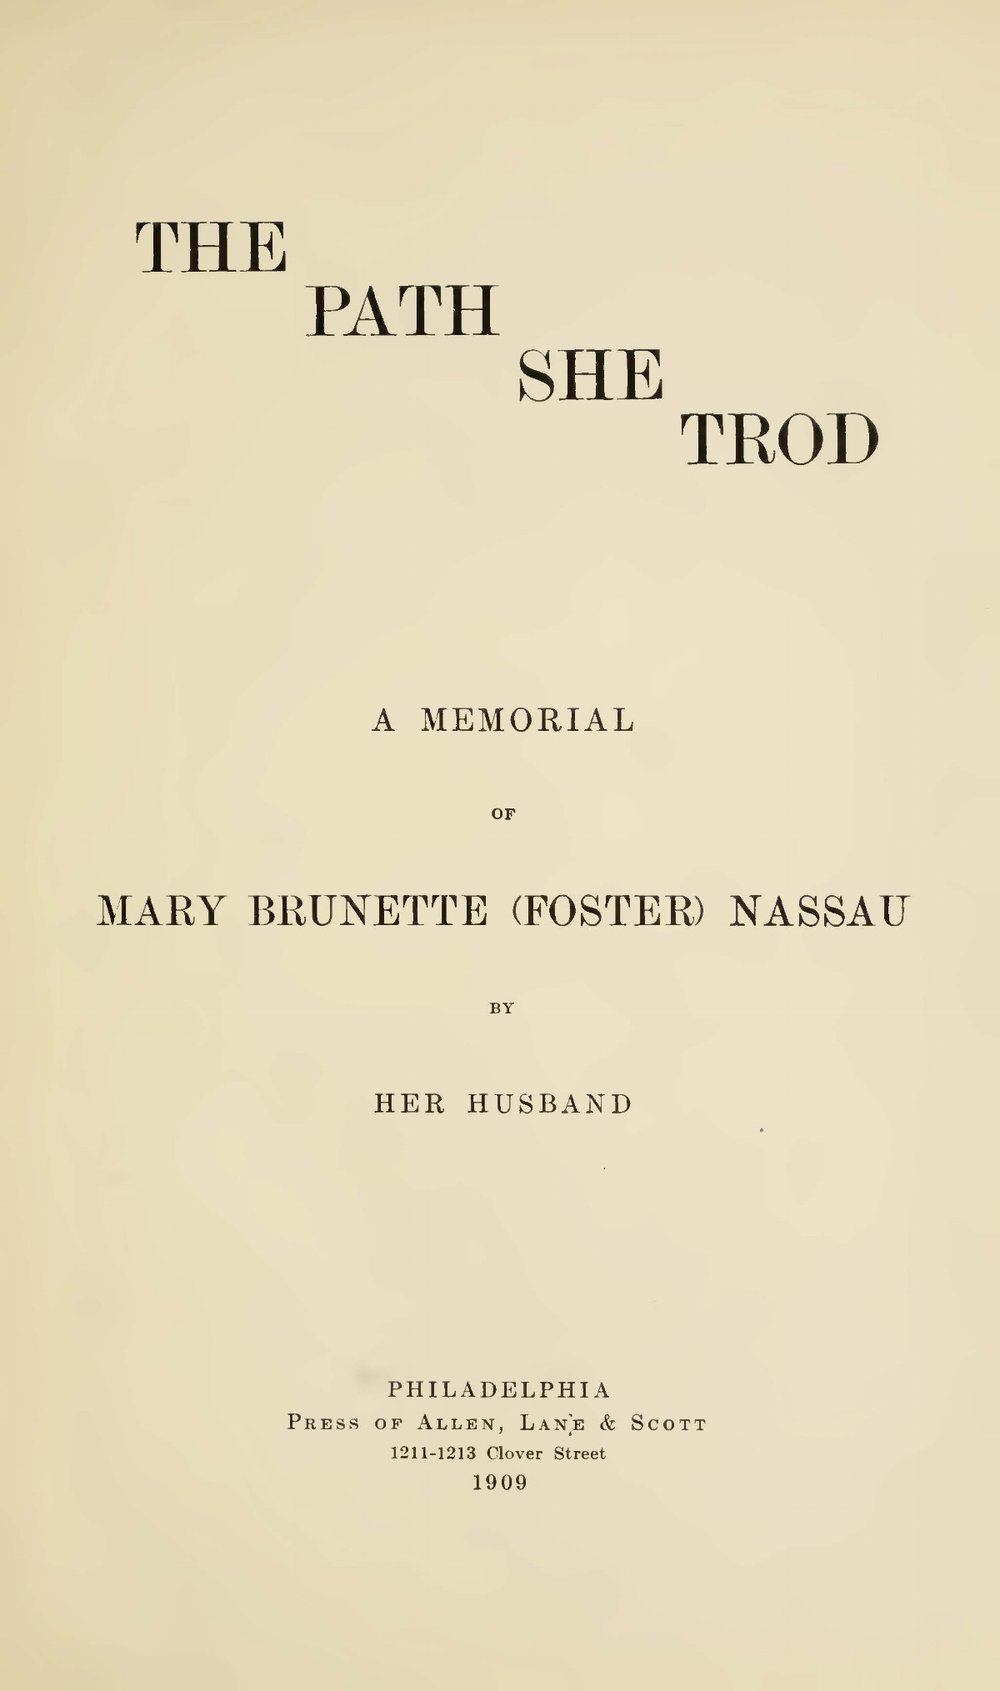 Nassau, Robert Hamill, The Path She Trod Title Page.jpg